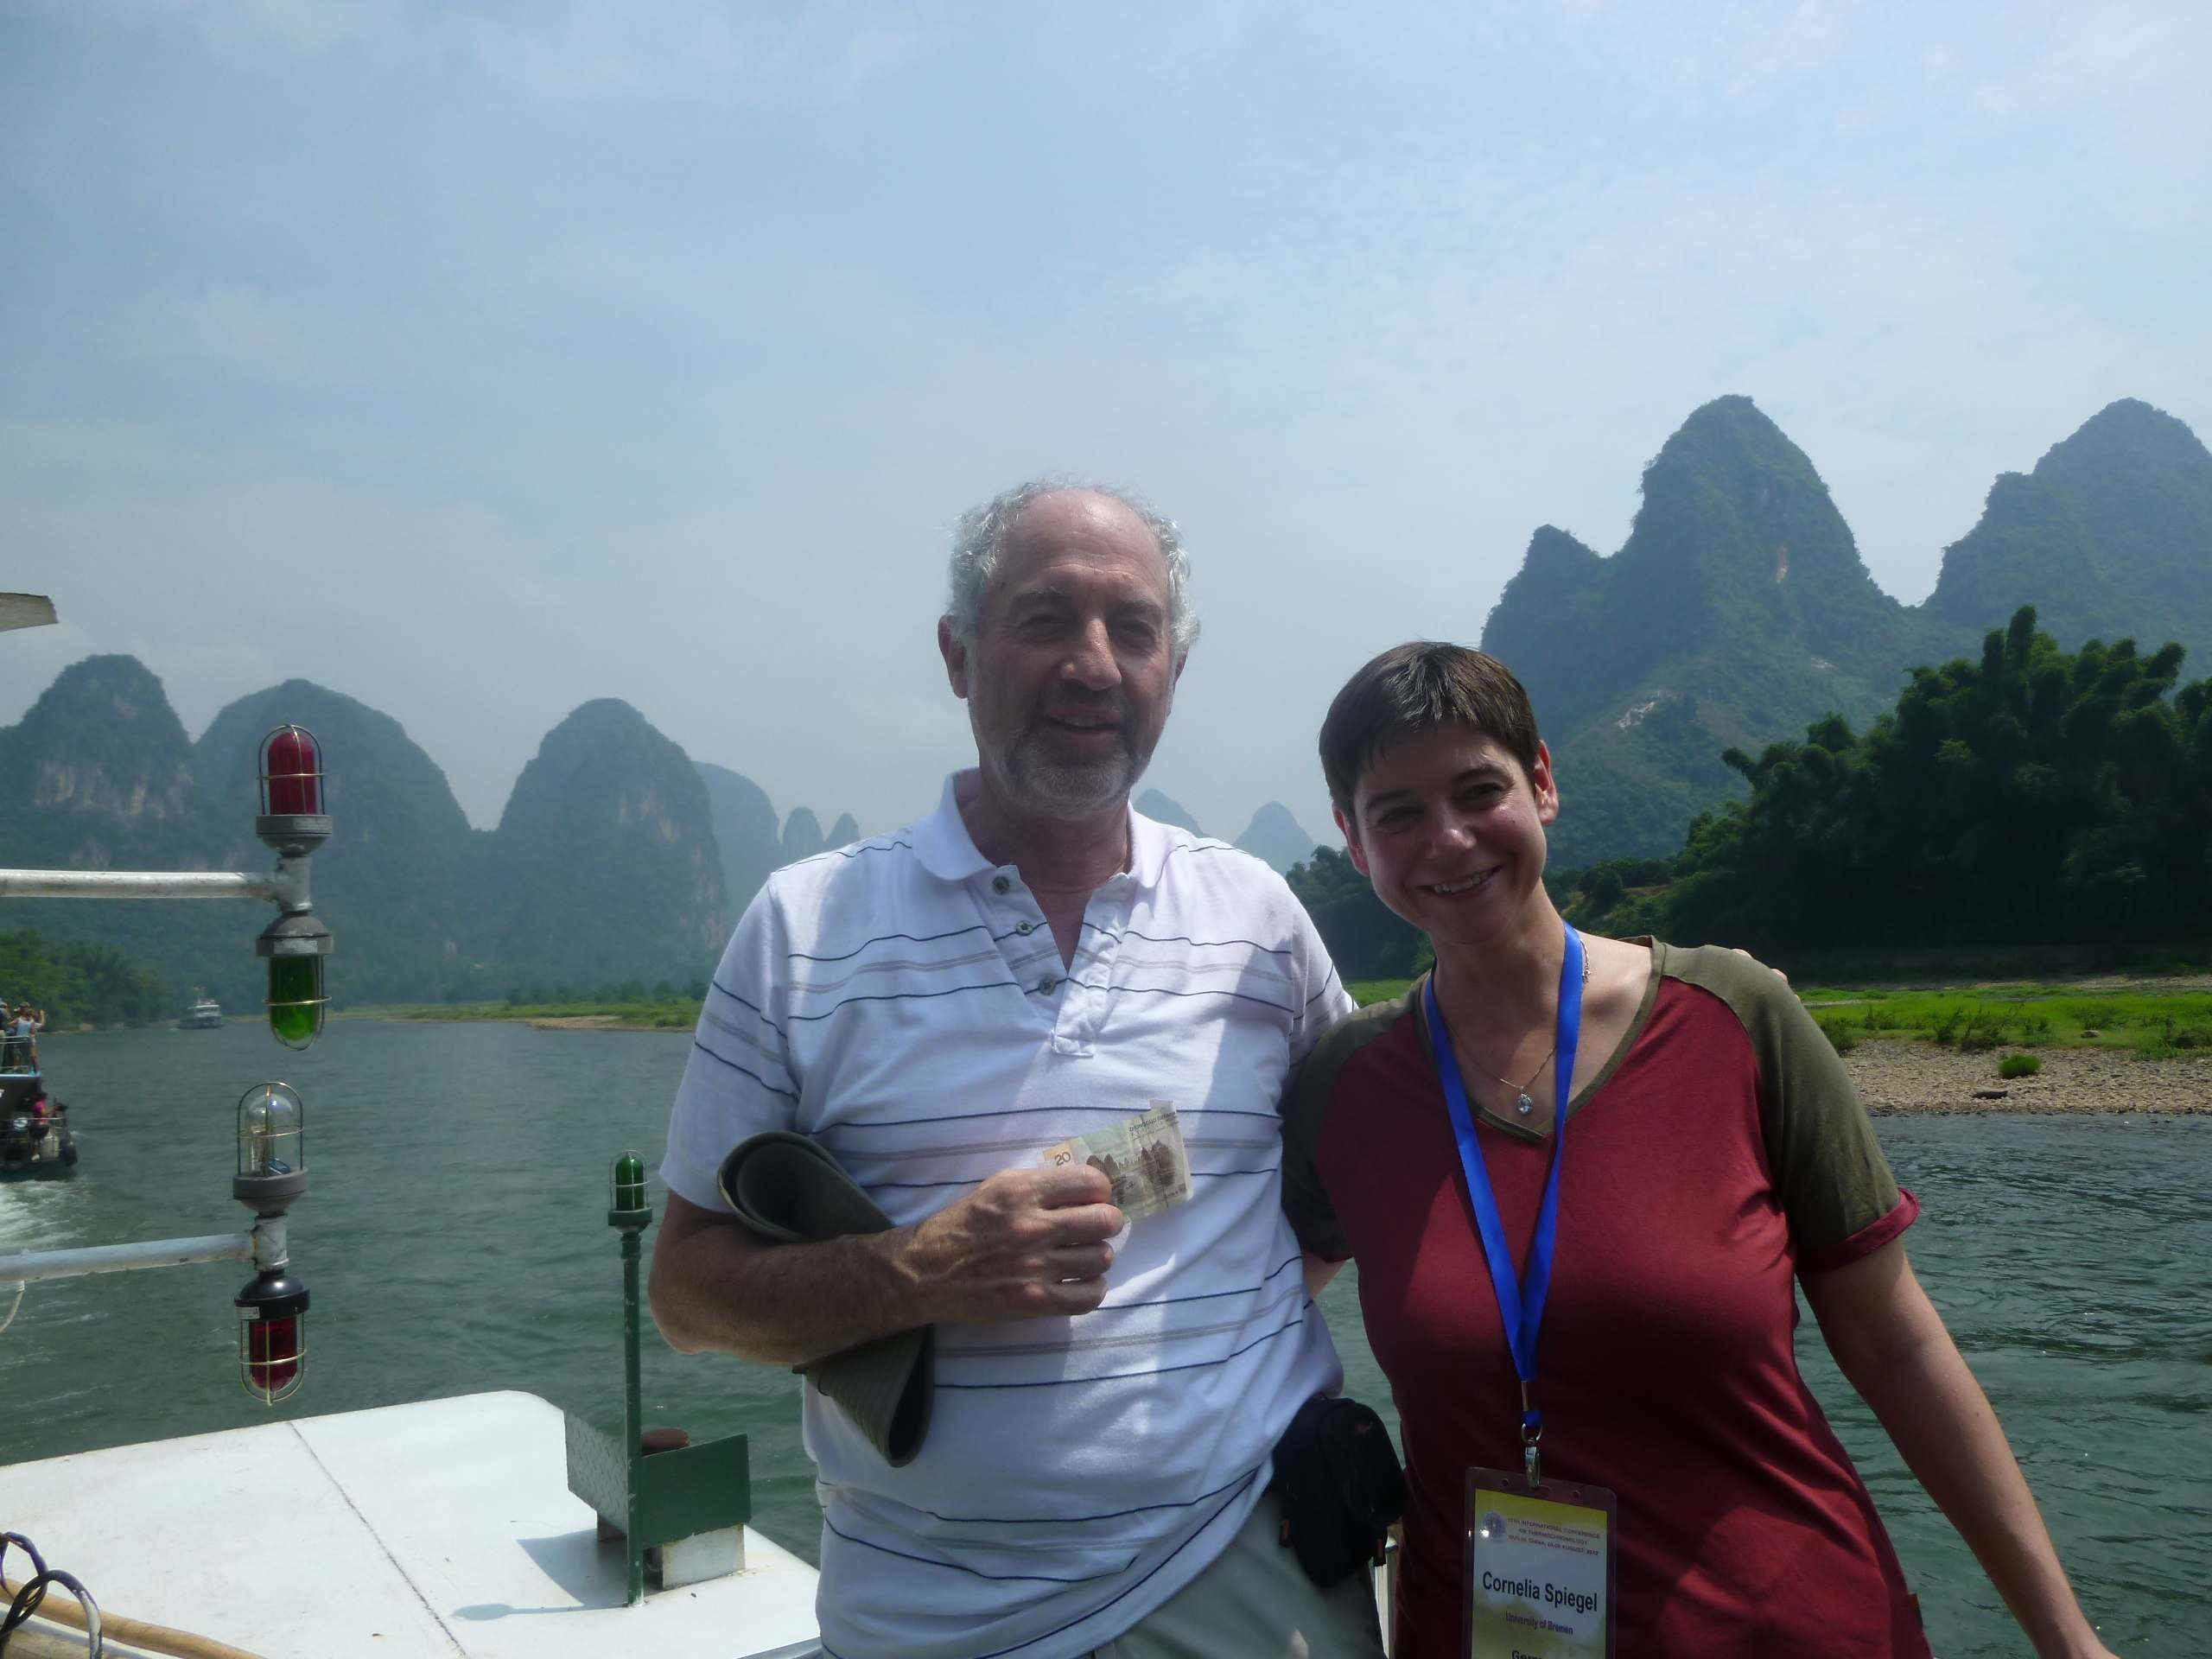 Barry Kohn and Cornelia Spiegel, Guilin, China 2012